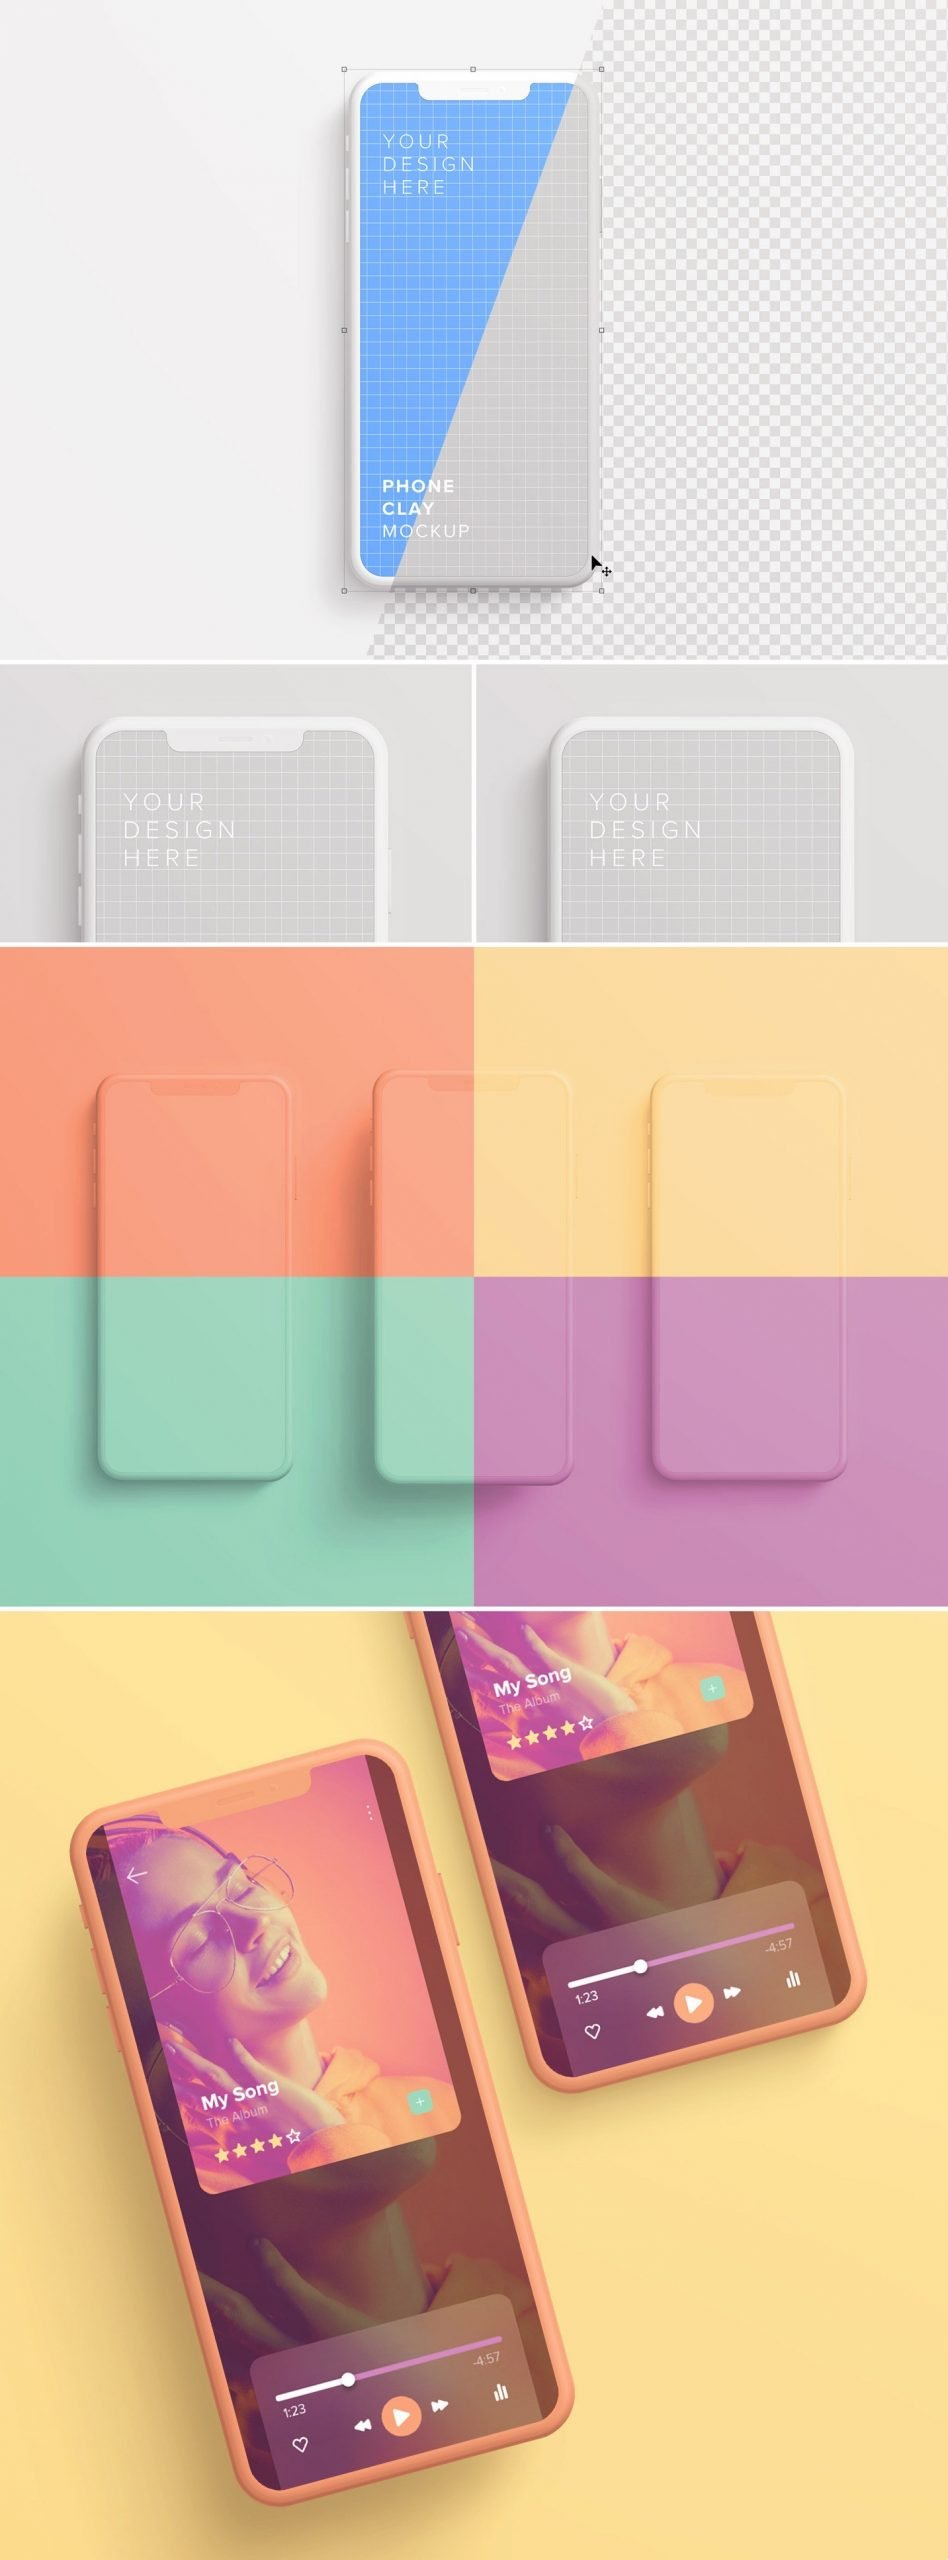 phone mockup preview1 1 scaled